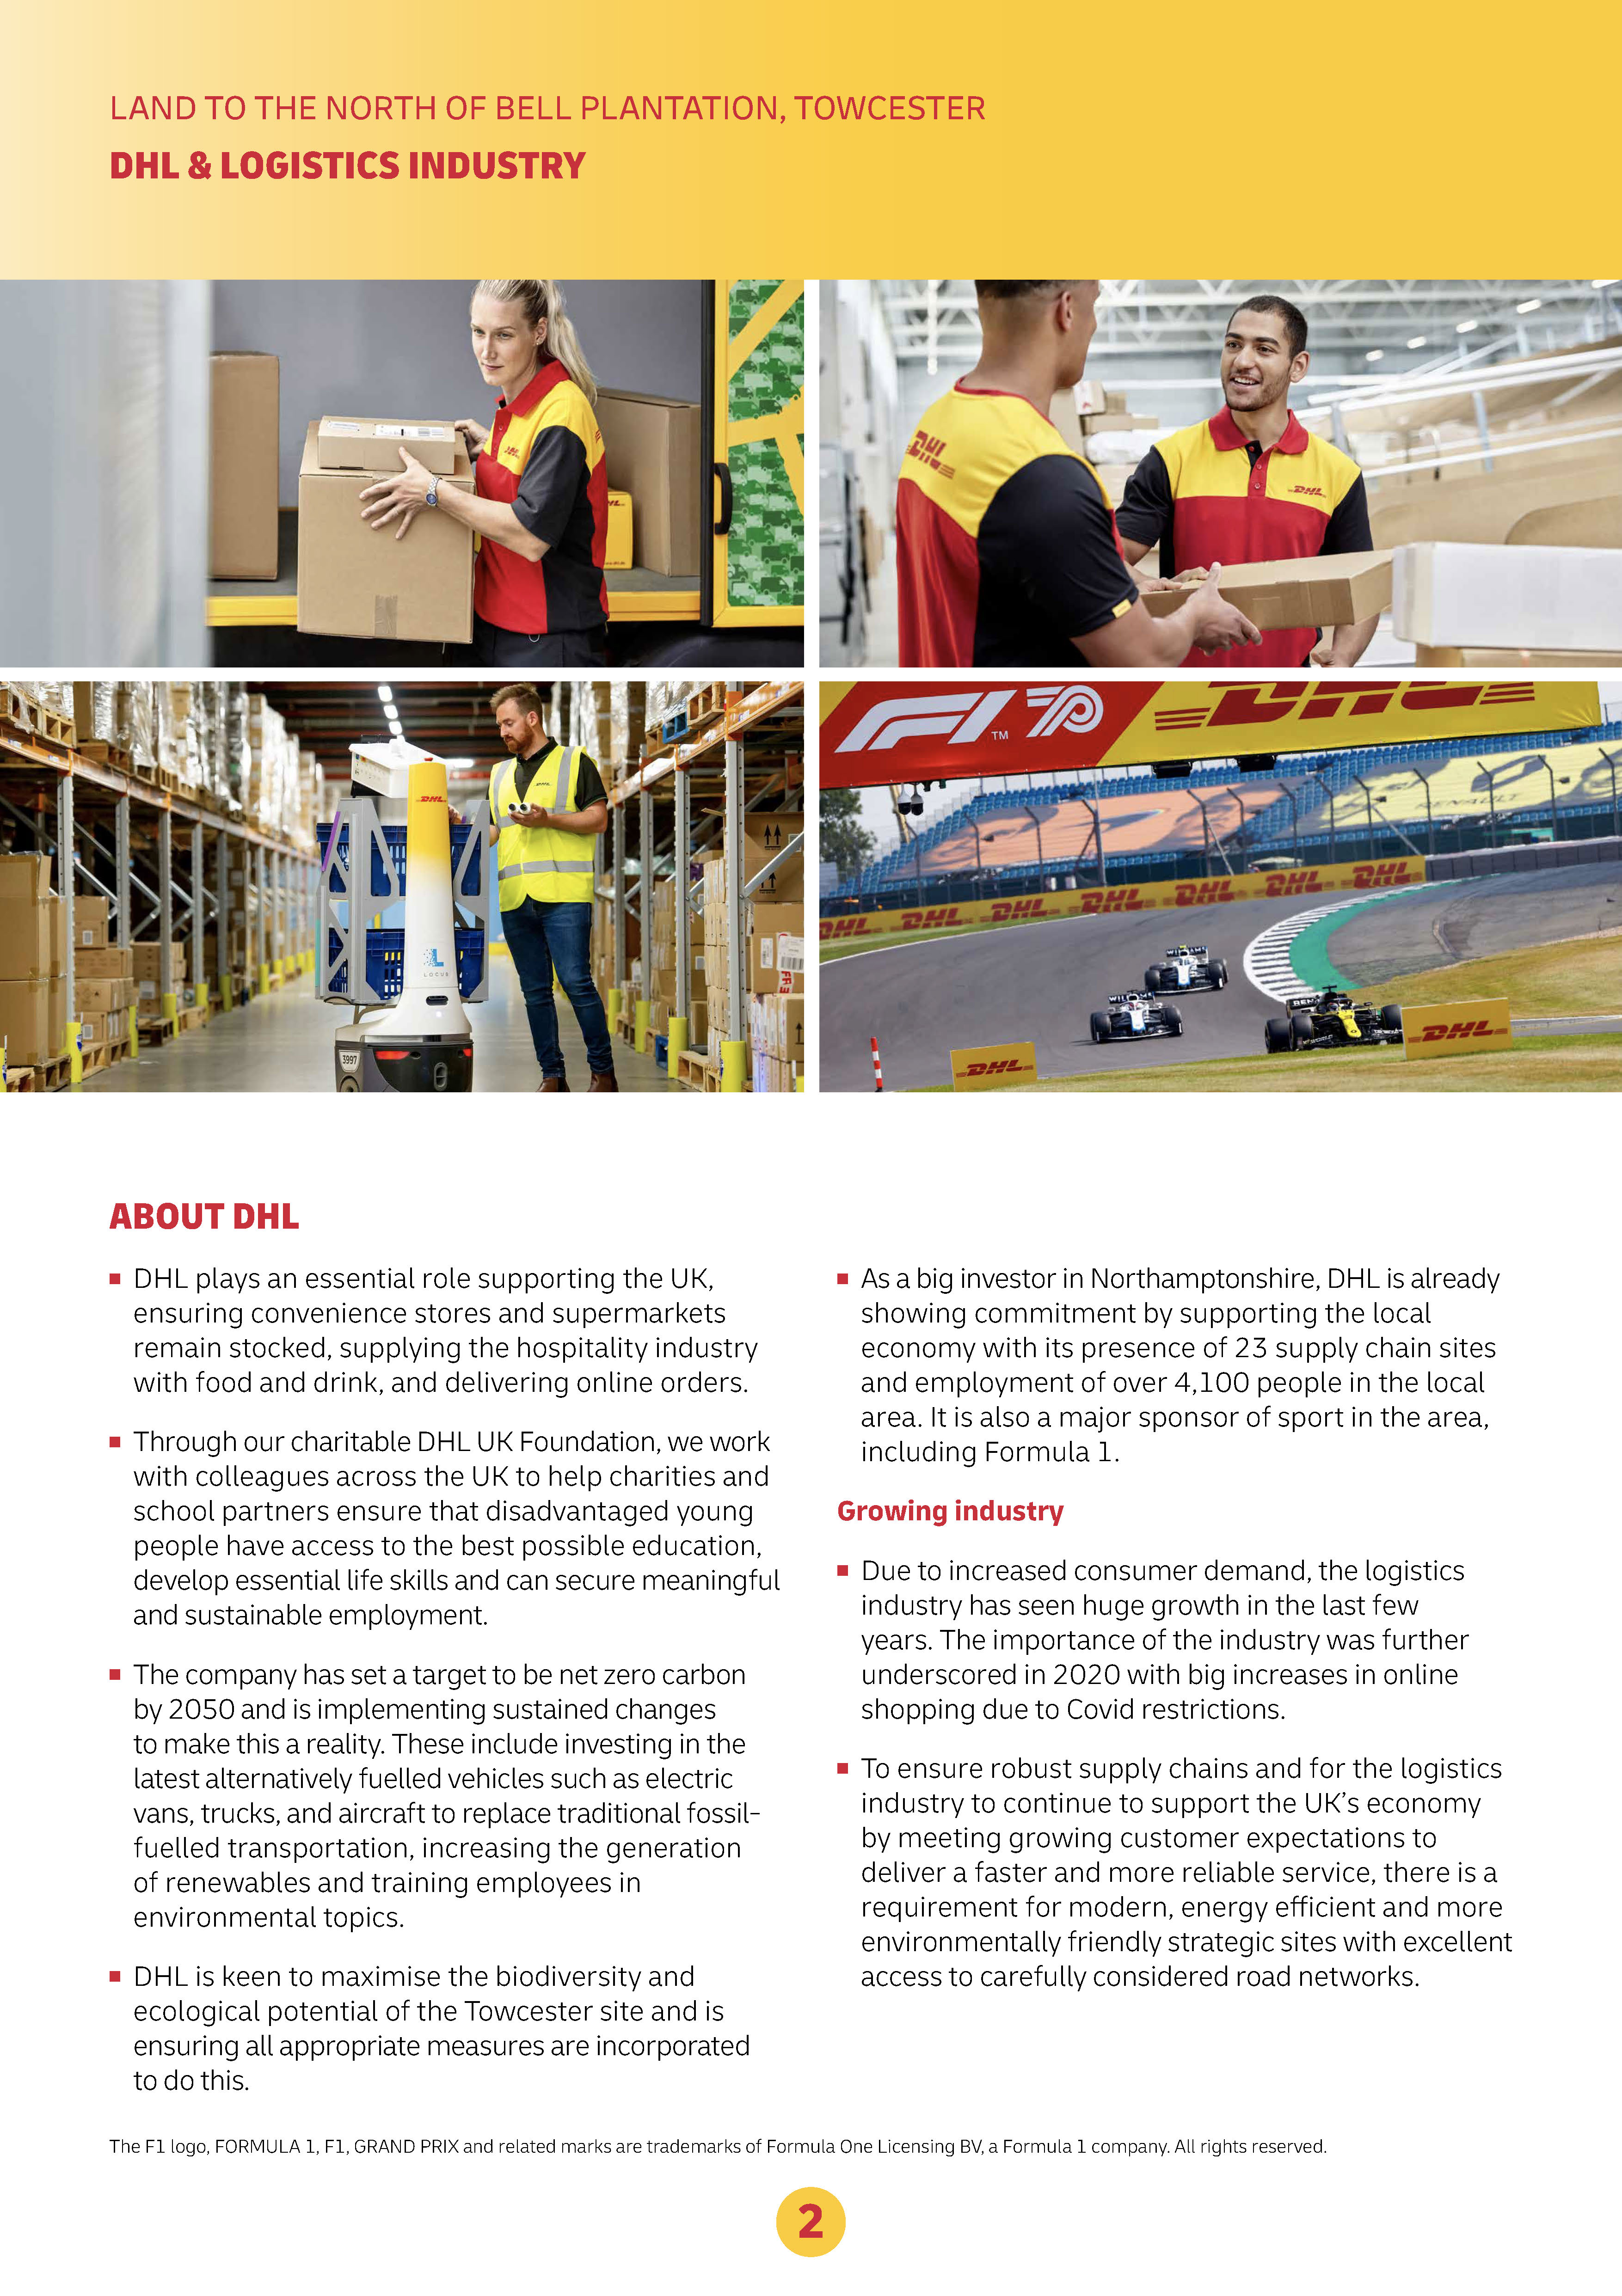 About DHL